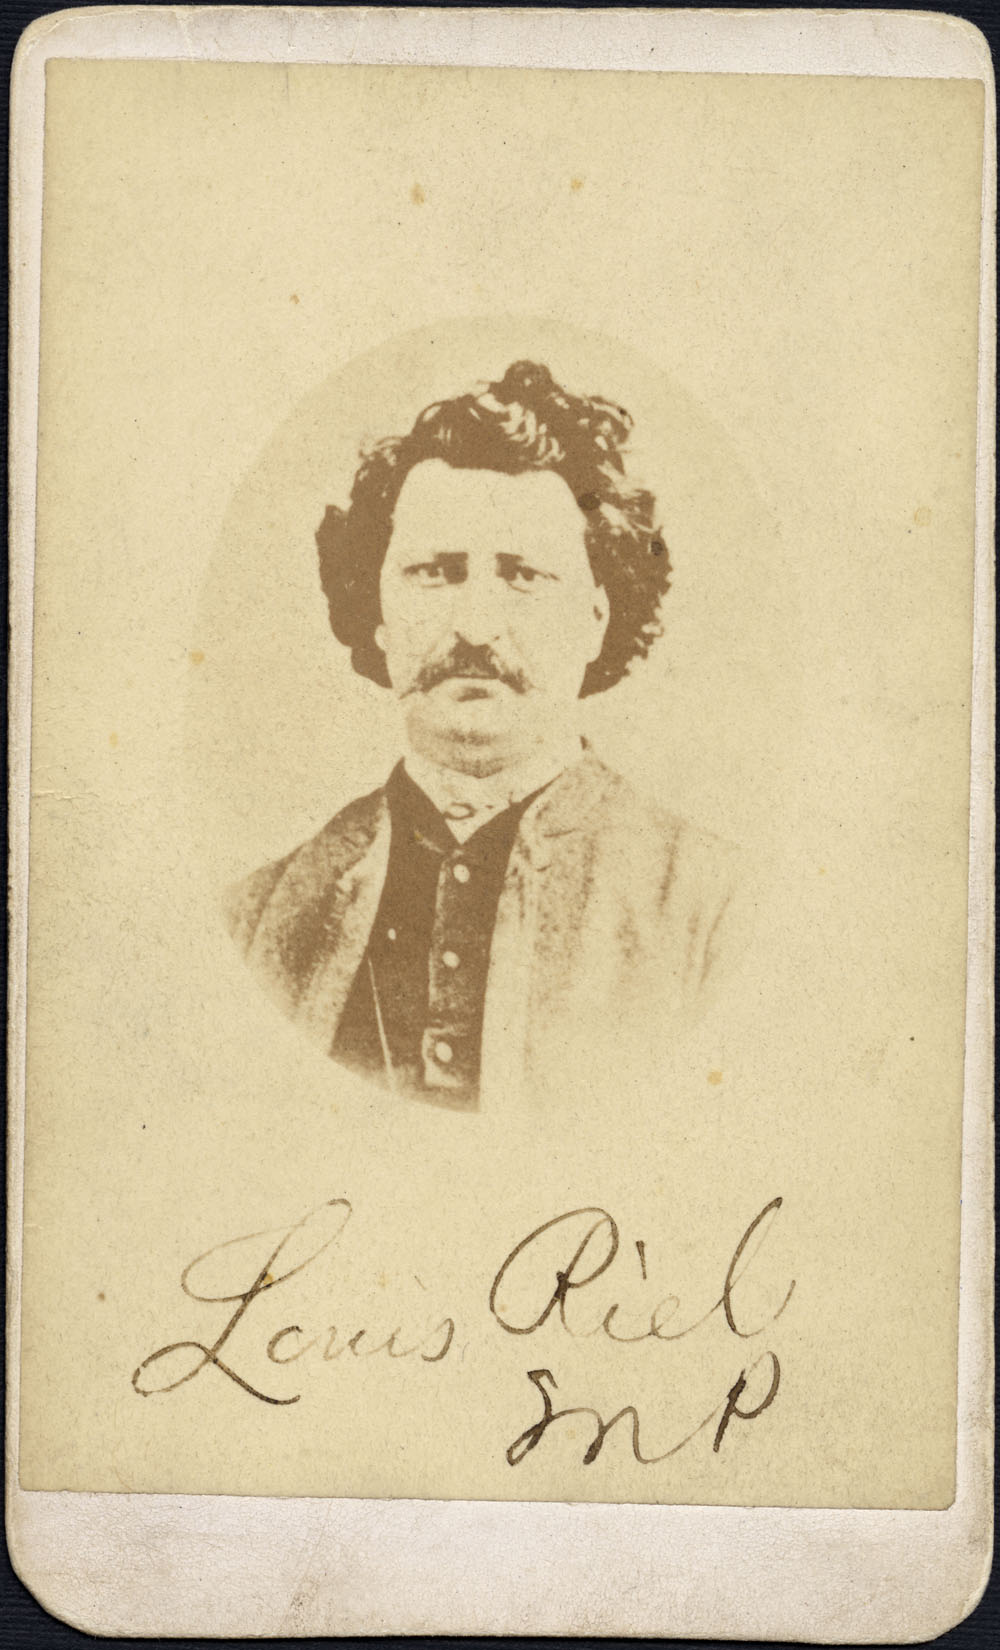 a biography of louis riel the canadian folk hero Googling 'louis riel images' turns up pictures on the one hand monumental and heroic, and on the other, commonplace and 'realistic' snapshots of riel in a mackinaw coat and at times even beardless rest alongside the frock-coated statesman these in turn abut upon shots of a comic-book hero and a.